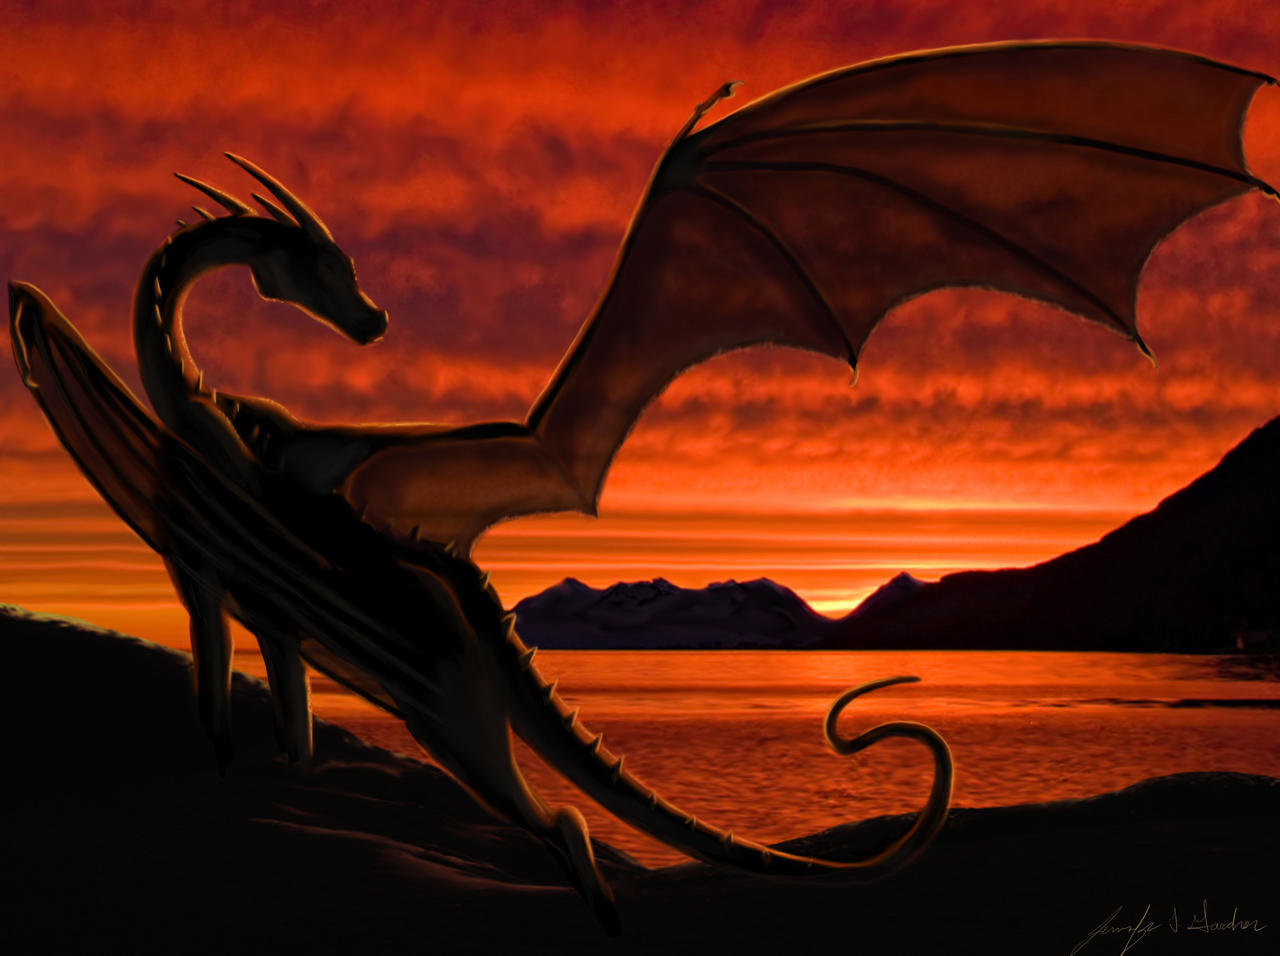 Water dragon in sunset by Mearow on DeviantArt |Dragons And Sunsets